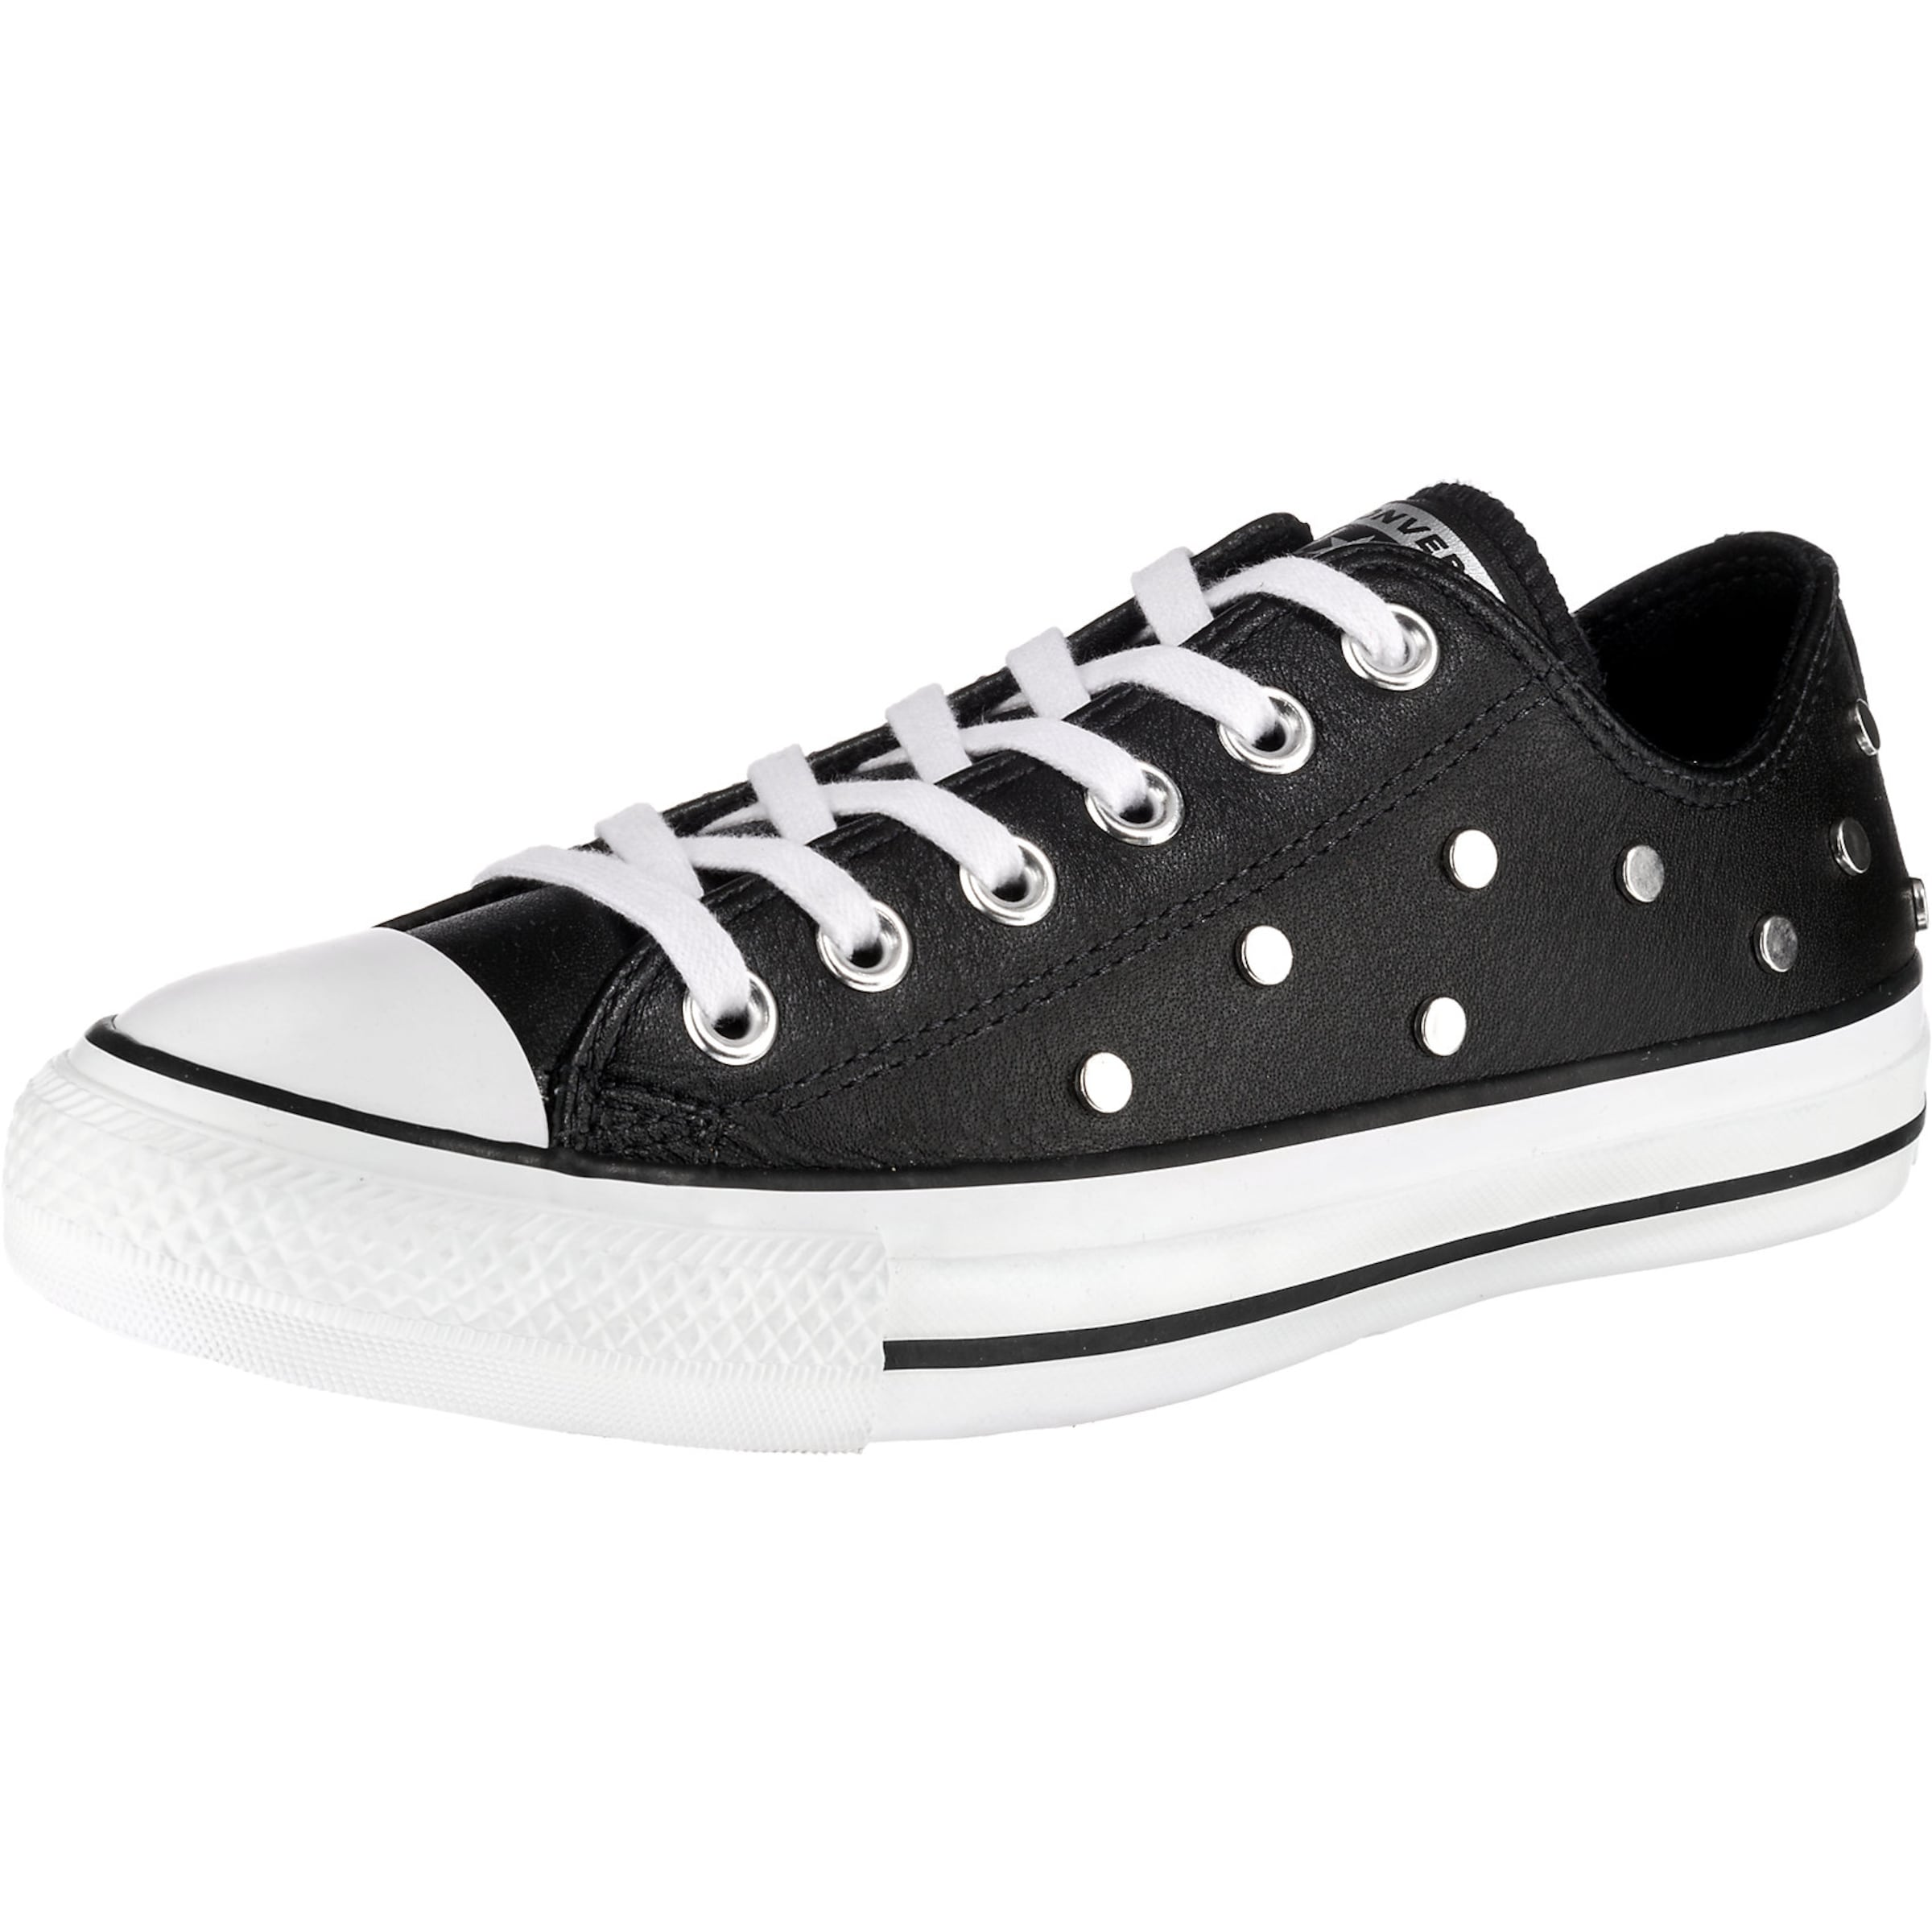 In Low' 'chuck Sneakers Converse Star All Taylor Schwarz 7bYyg6fv